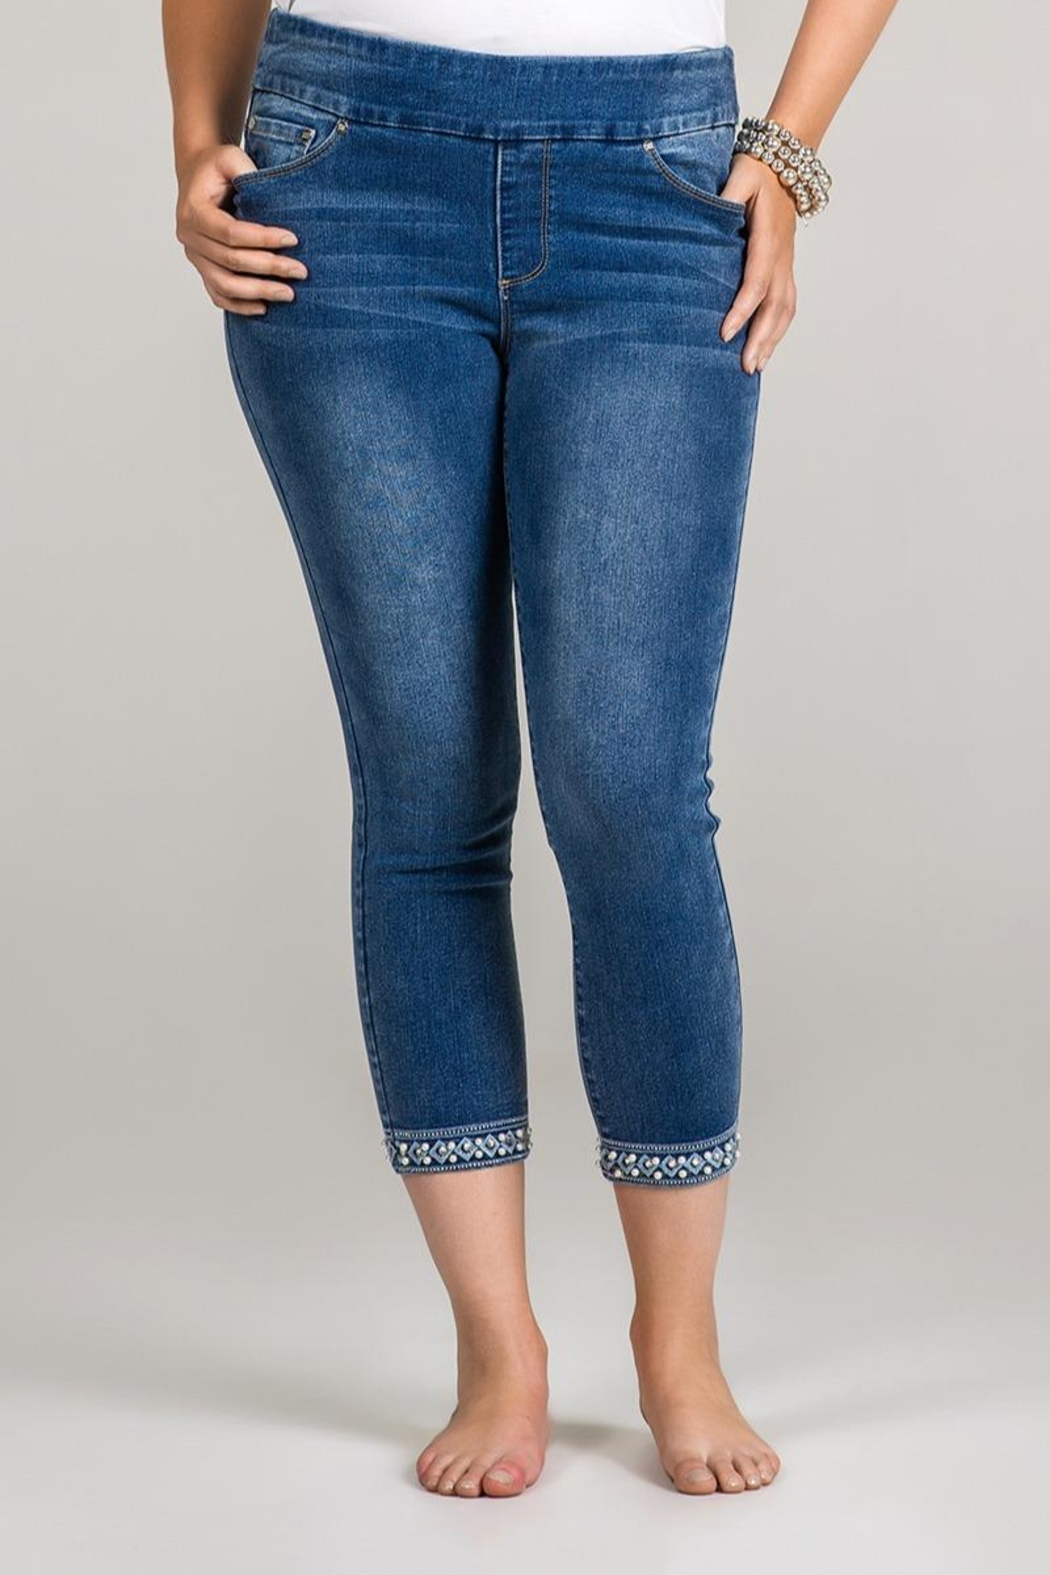 GG Jeans Pearl Hem Capri - Front Cropped Image